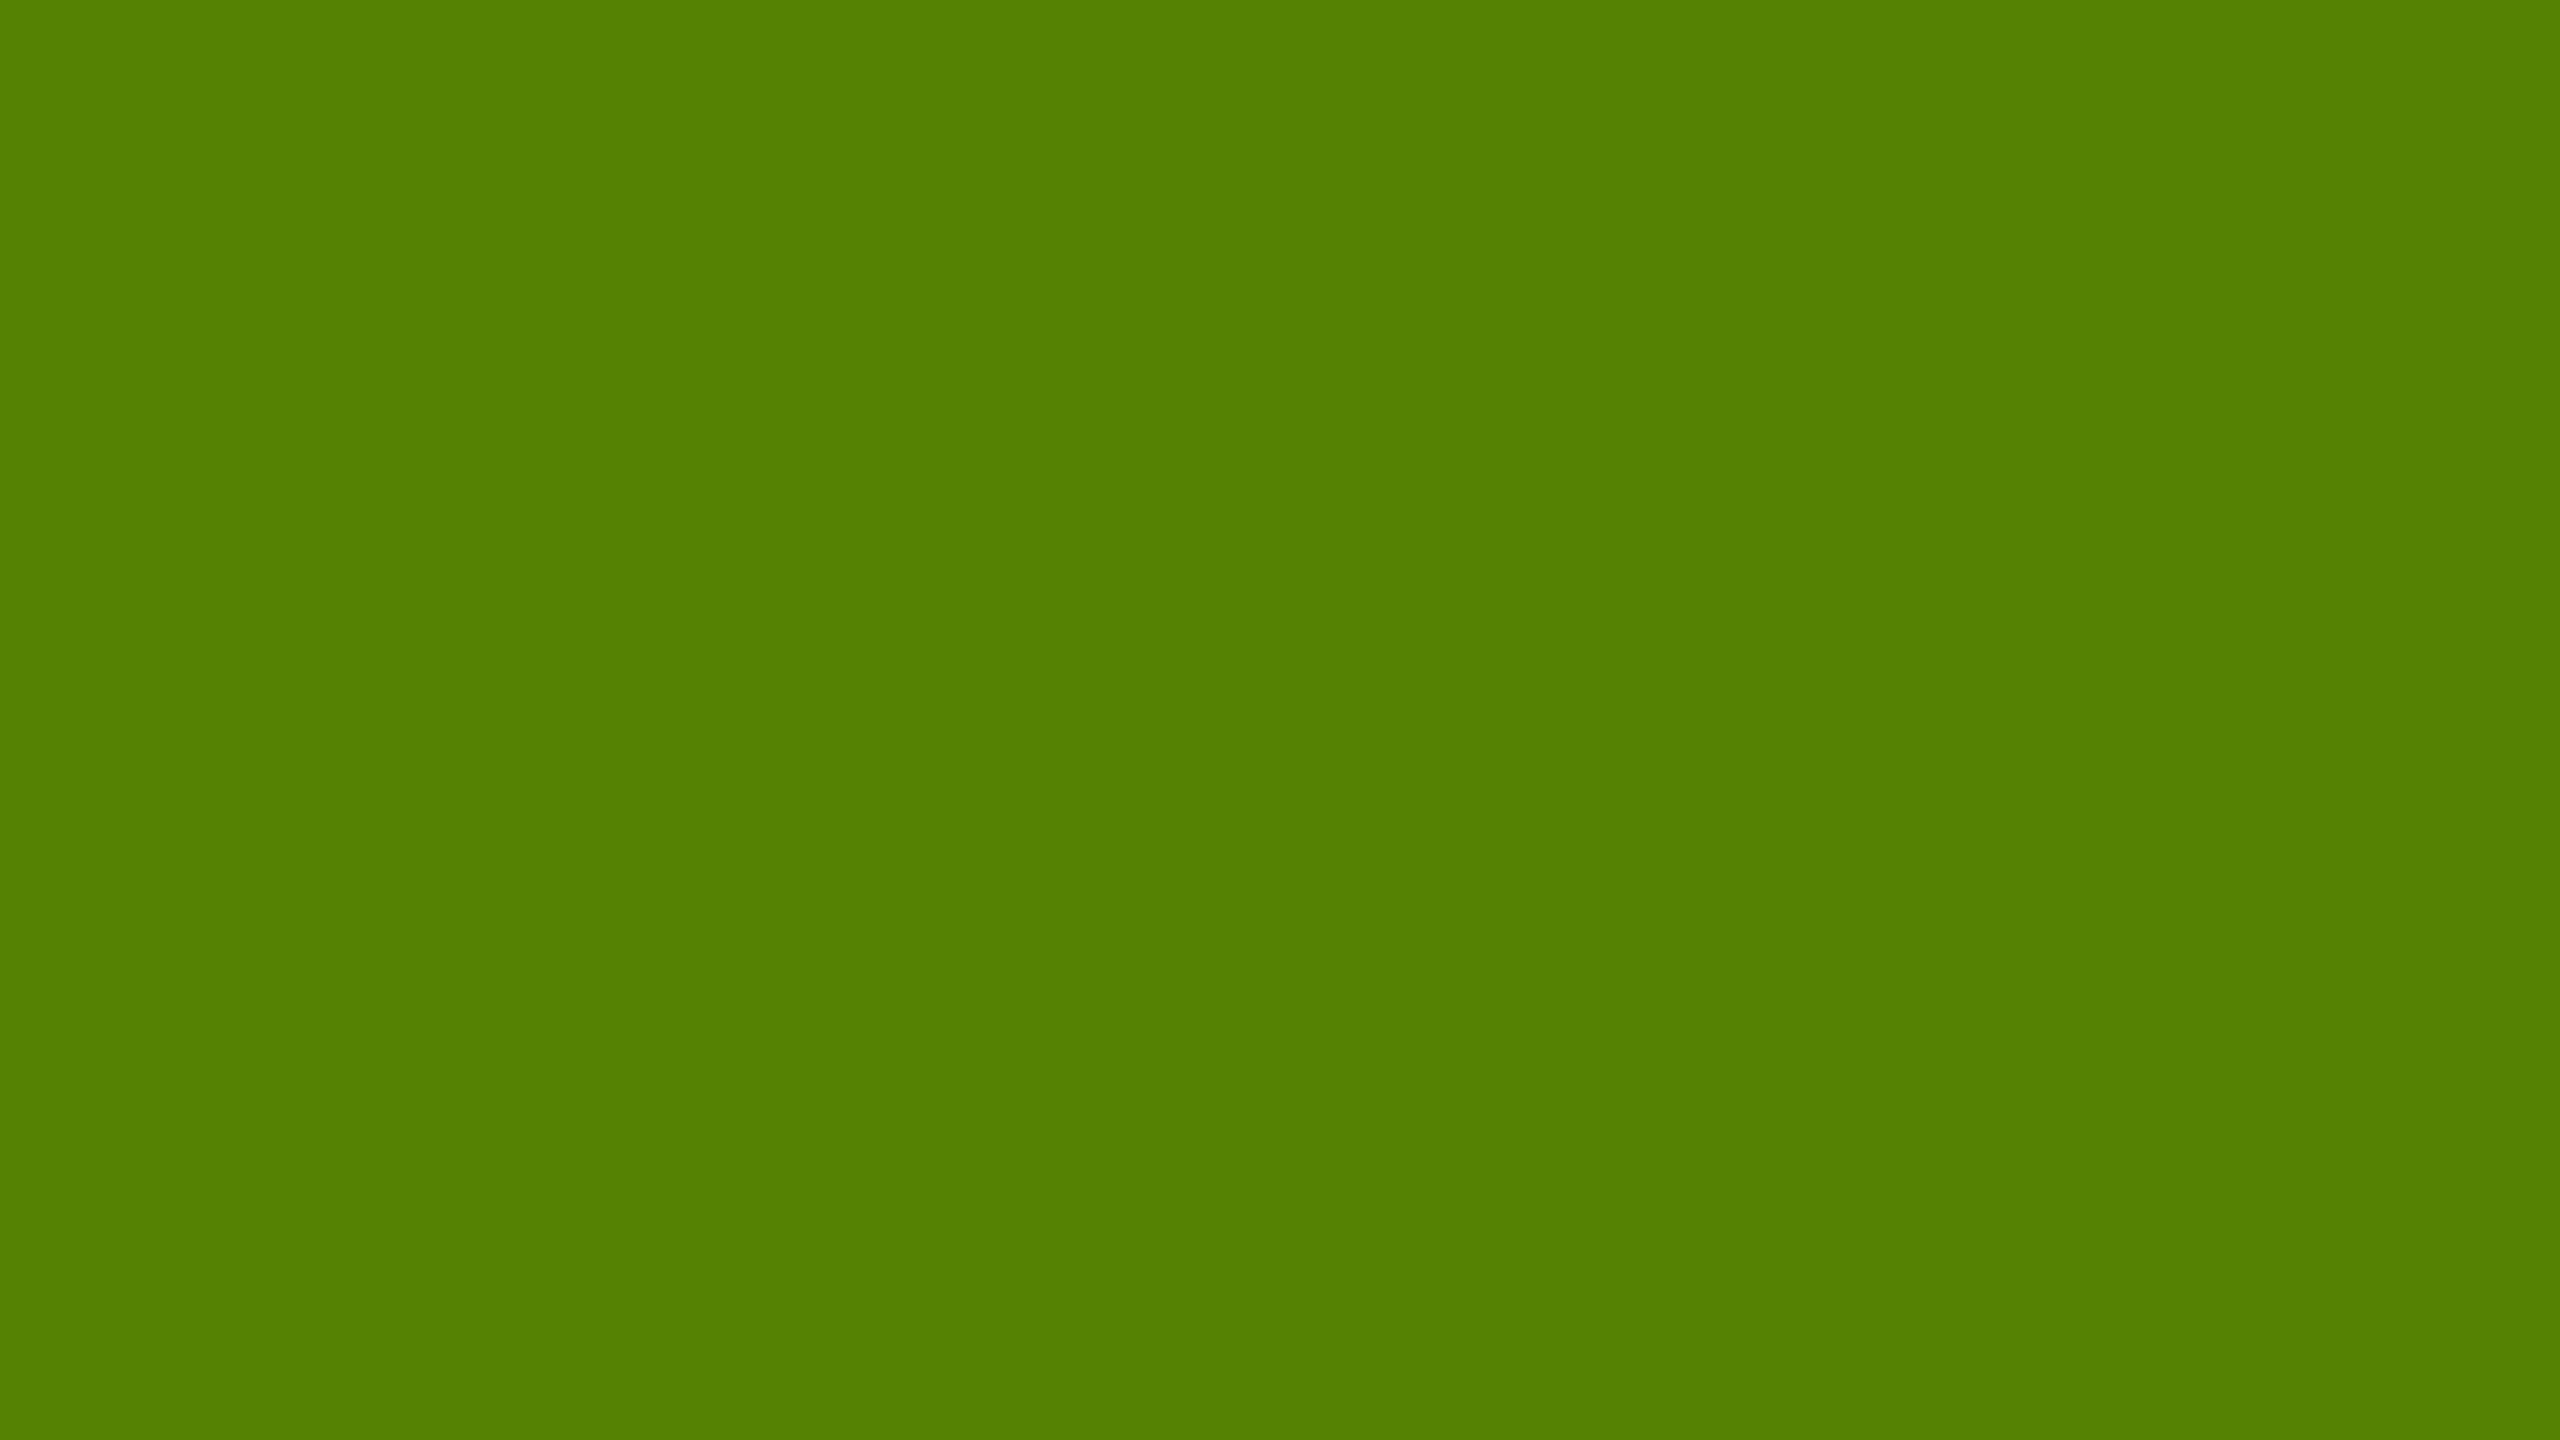 Privacy Policy >> 2560x1440 Avocado Solid Color Background